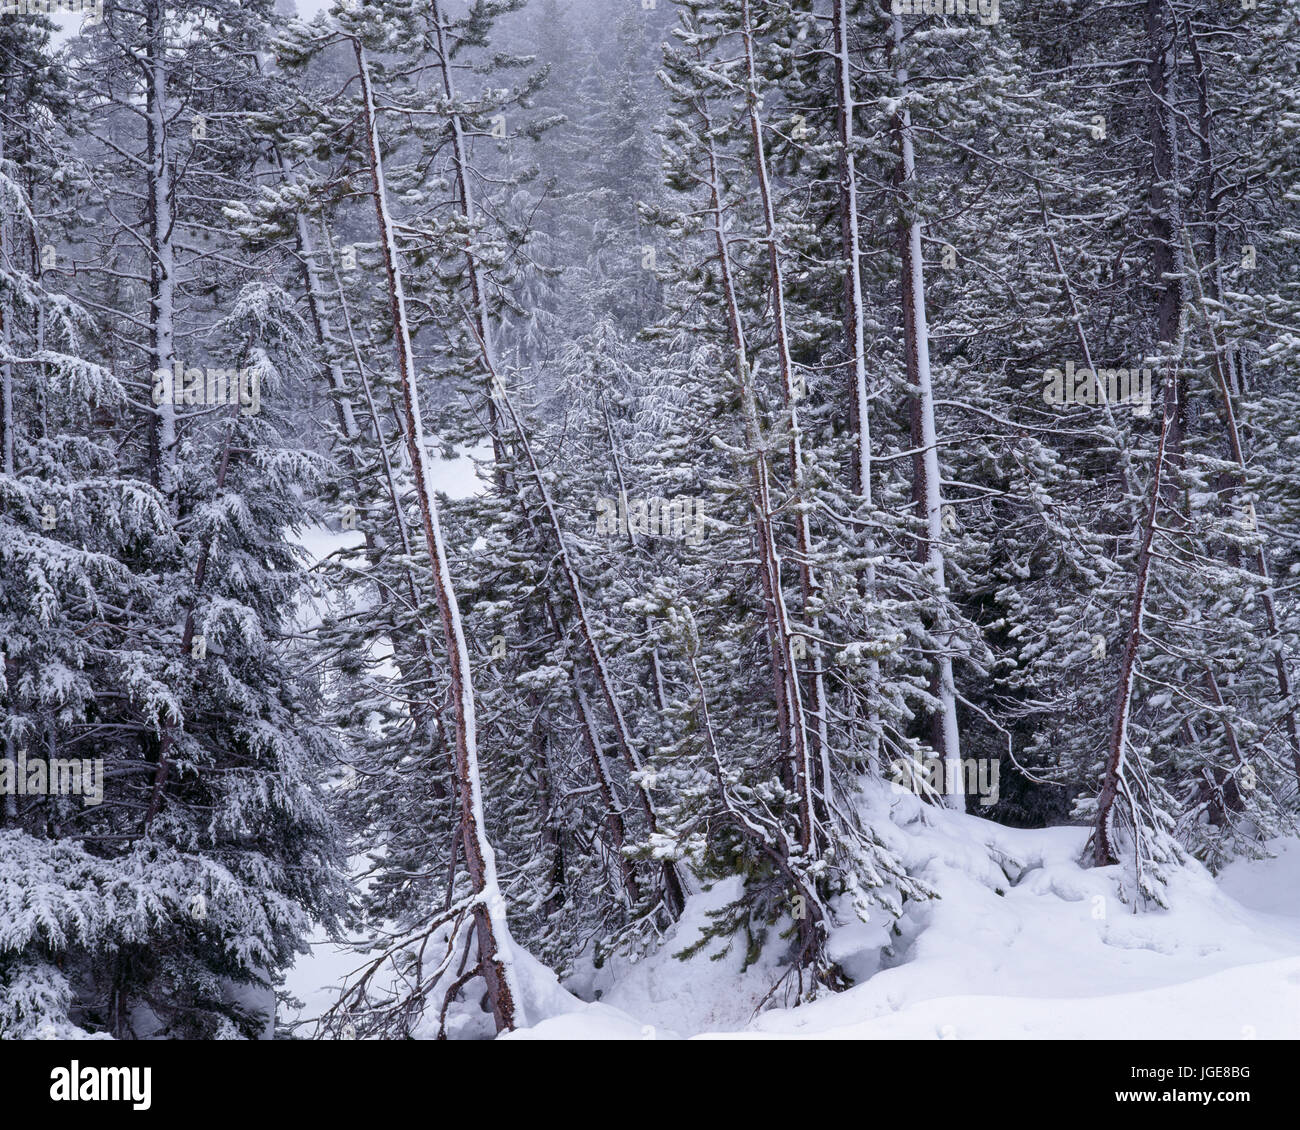 USA, Oregon, Crater Lake National Park, Winter snow clings to conifer forest. - Stock Image